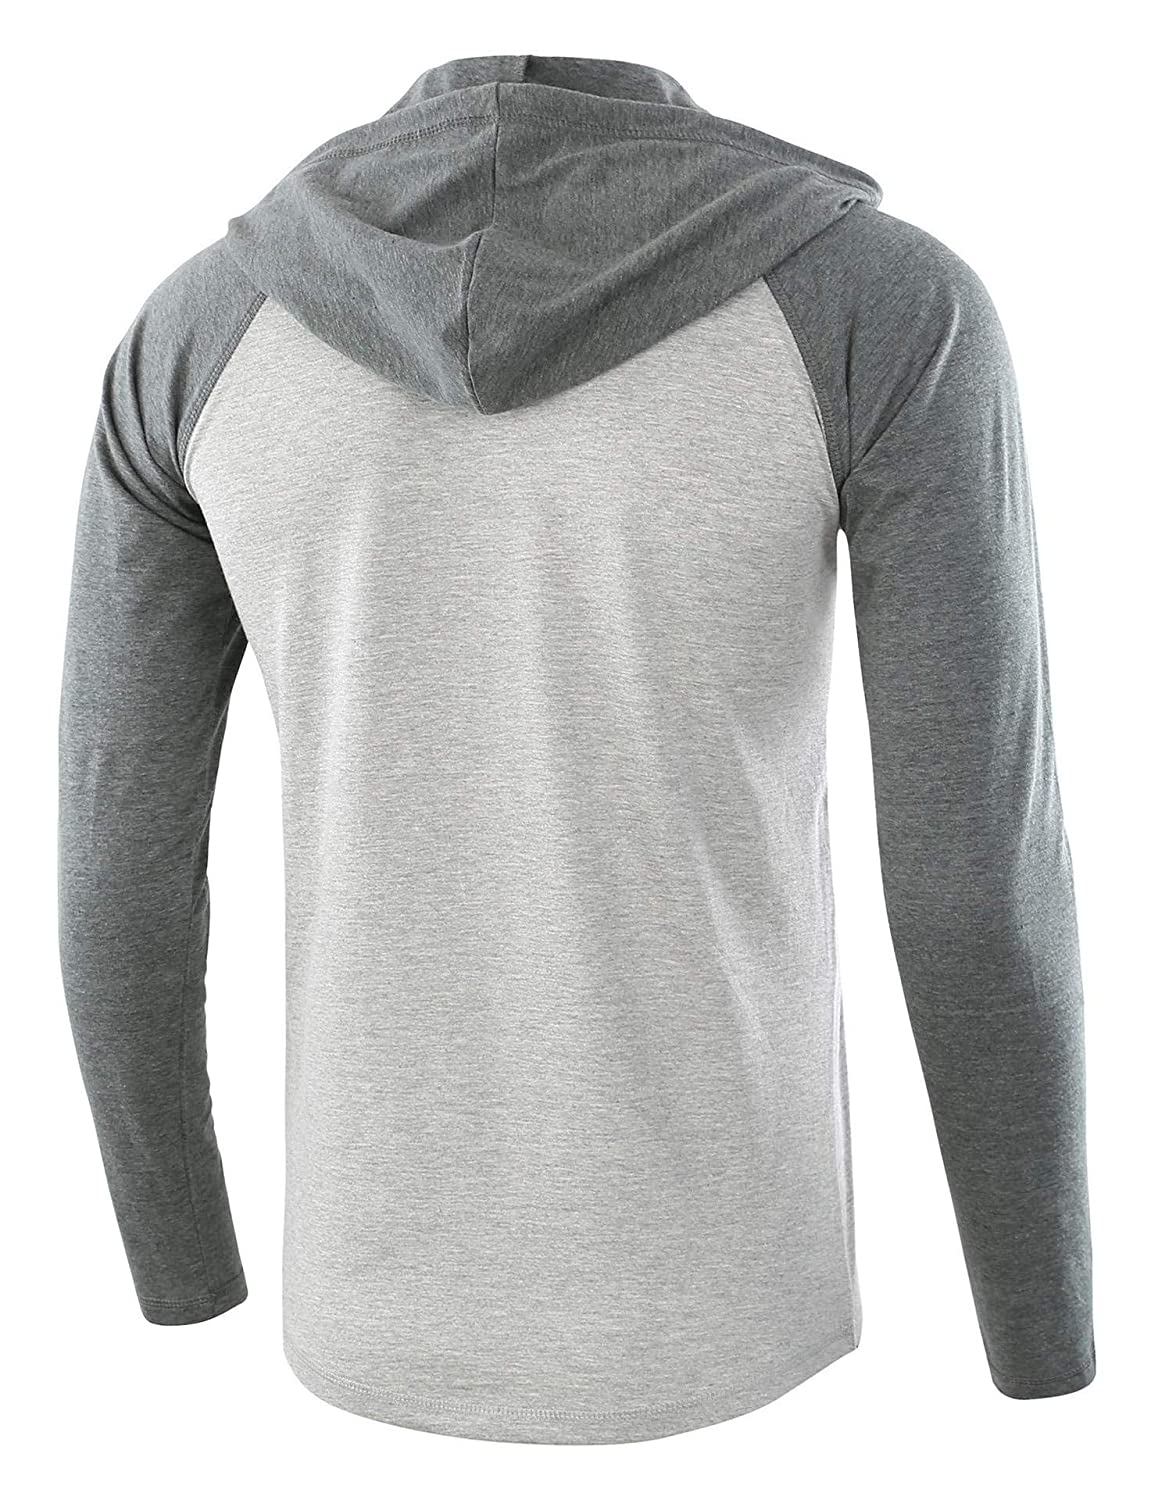 Fieer Mens Cozy Hood Oversize Spell Color Lounge Top Tees Polo